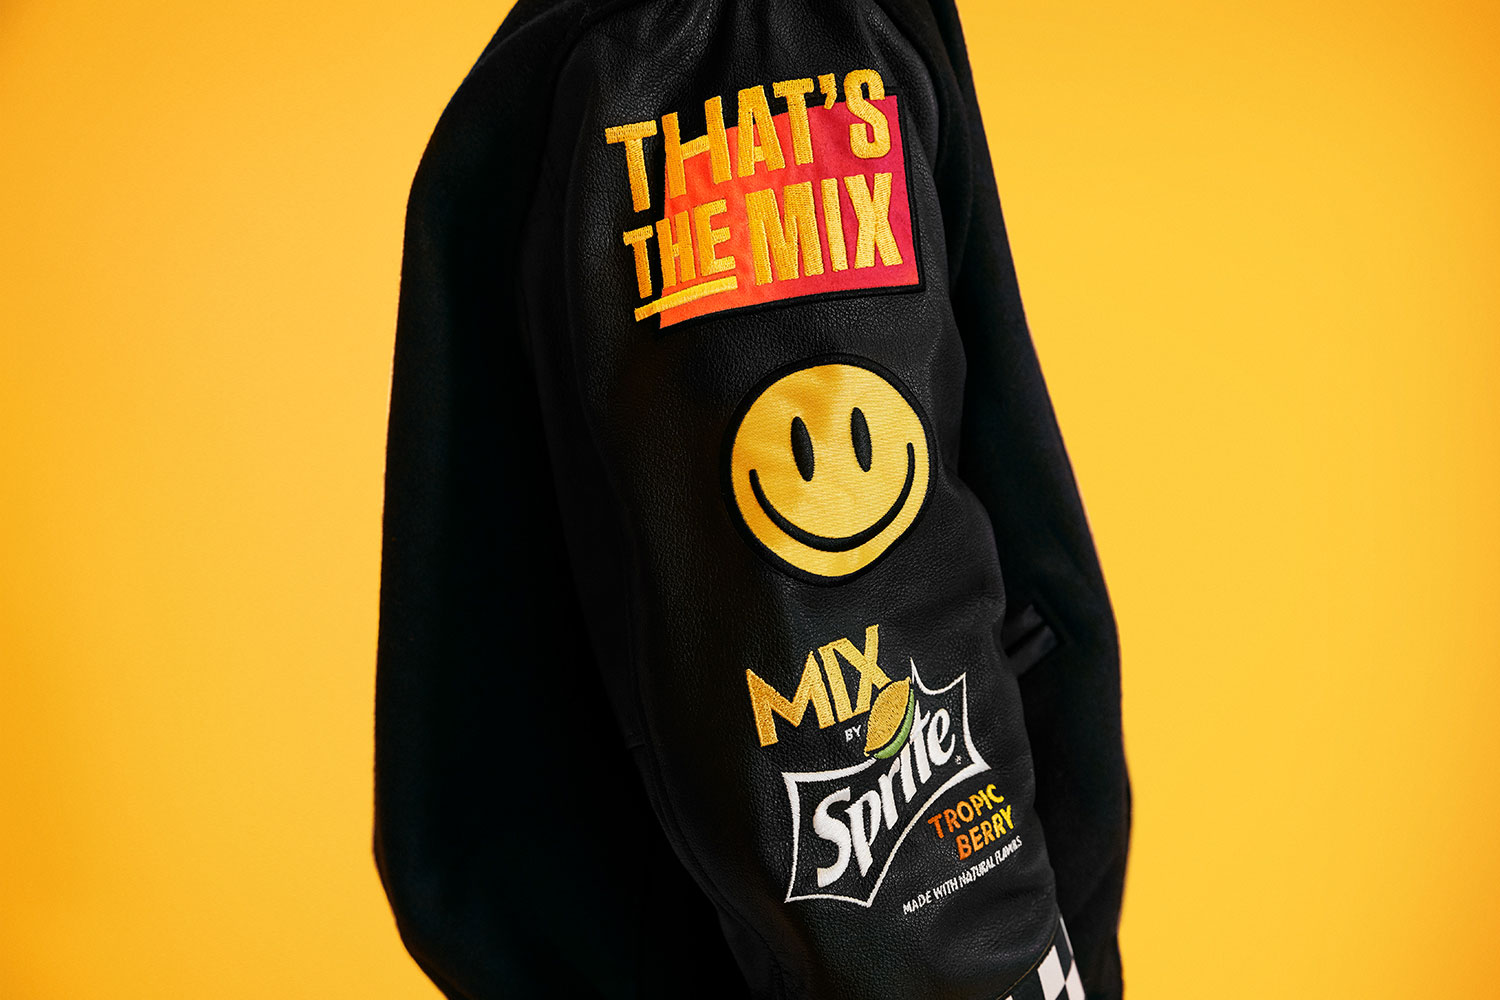 closeup of a black jacket sleeve, showing That's the MIX and MIX by Sprite™ Tropic Berry logos and a smiley face